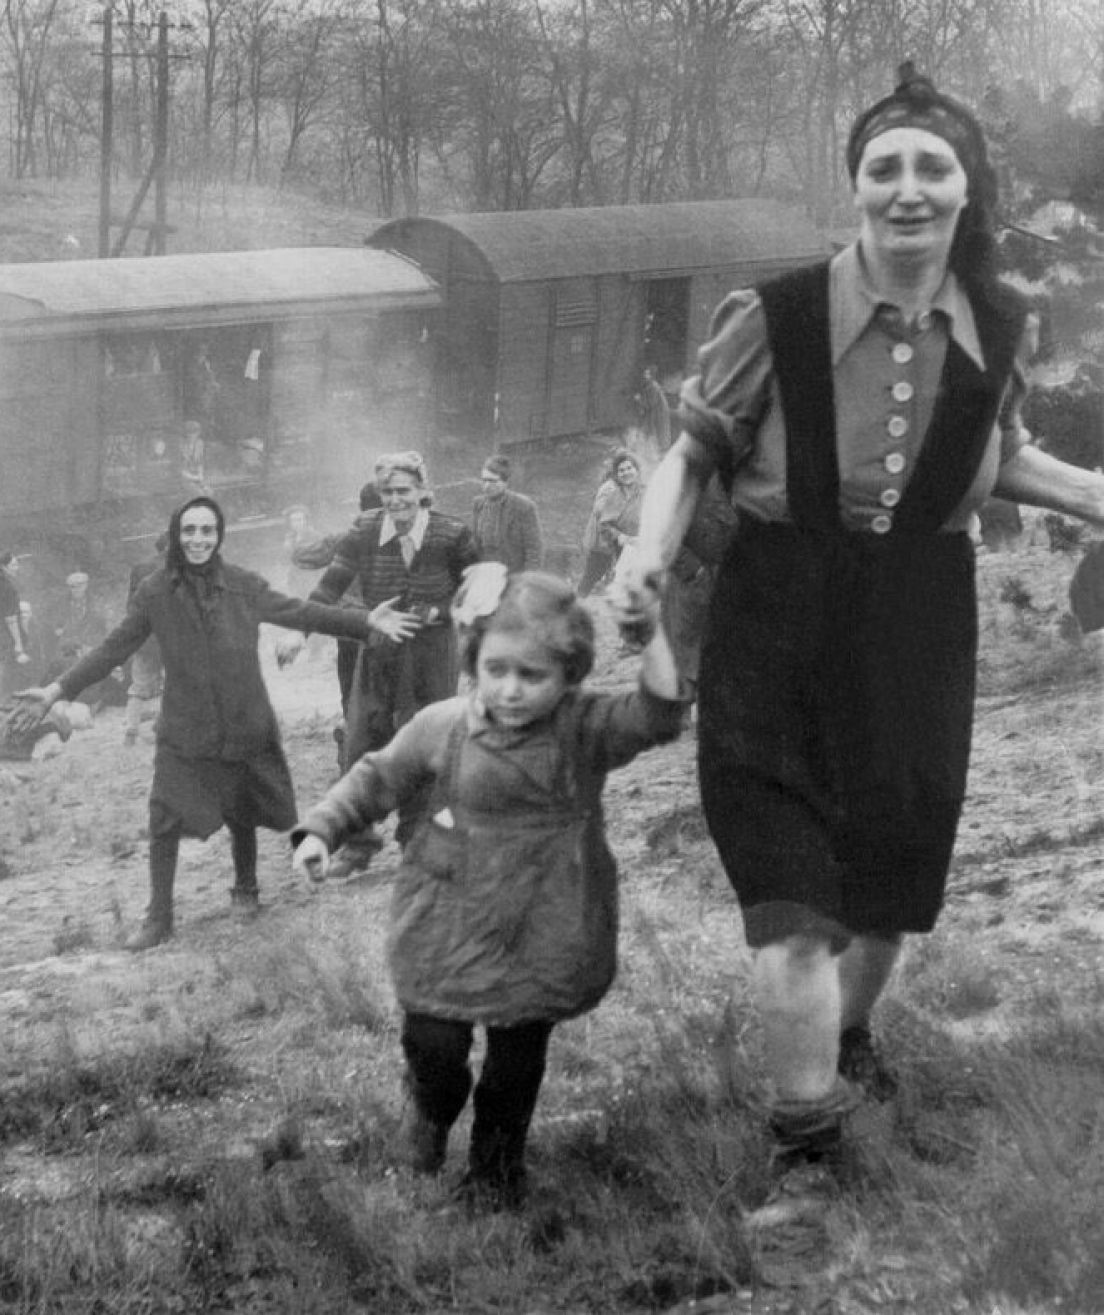 the holocaust train that led jews to freedom instead of death